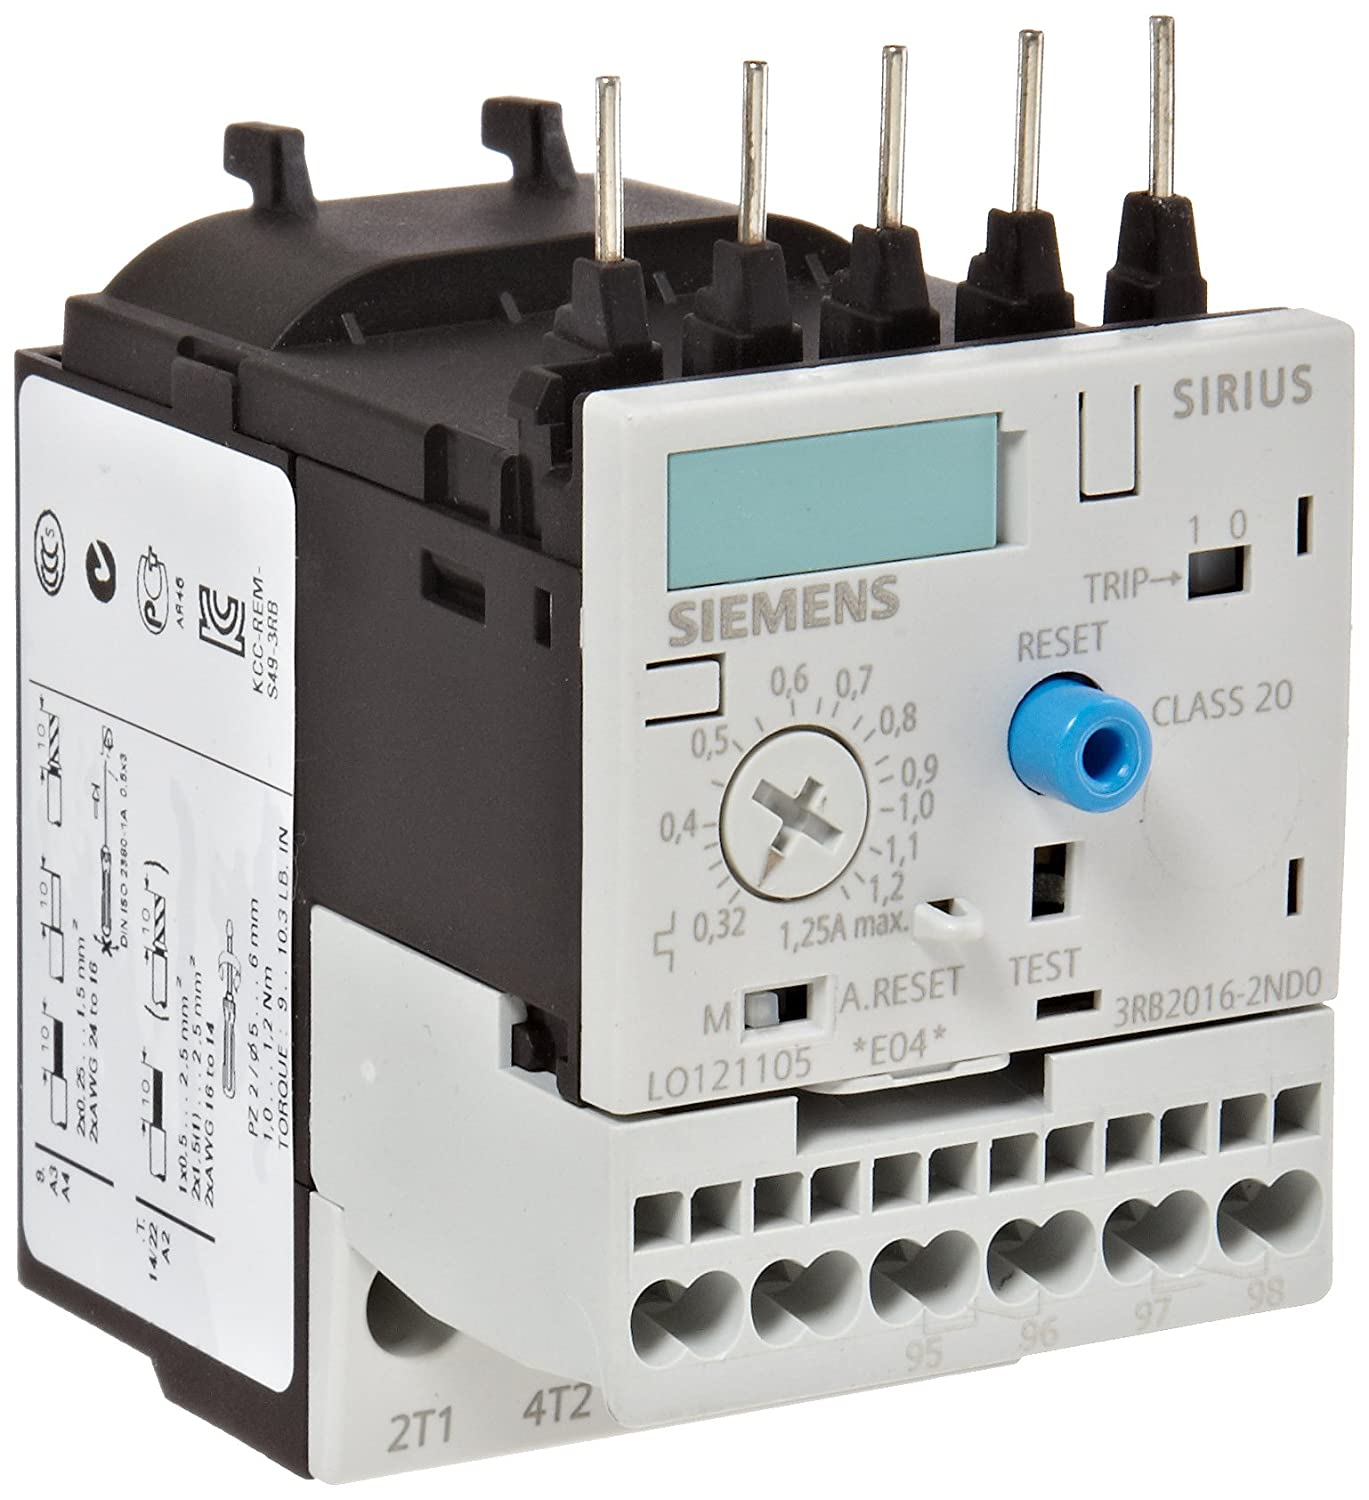 S00 Contactor Size Class 20 Siemens 3 RB20 16-2 ND0 Solid State Overload Relay 0.32-1.25A Set Current Value 3RB20162ND0